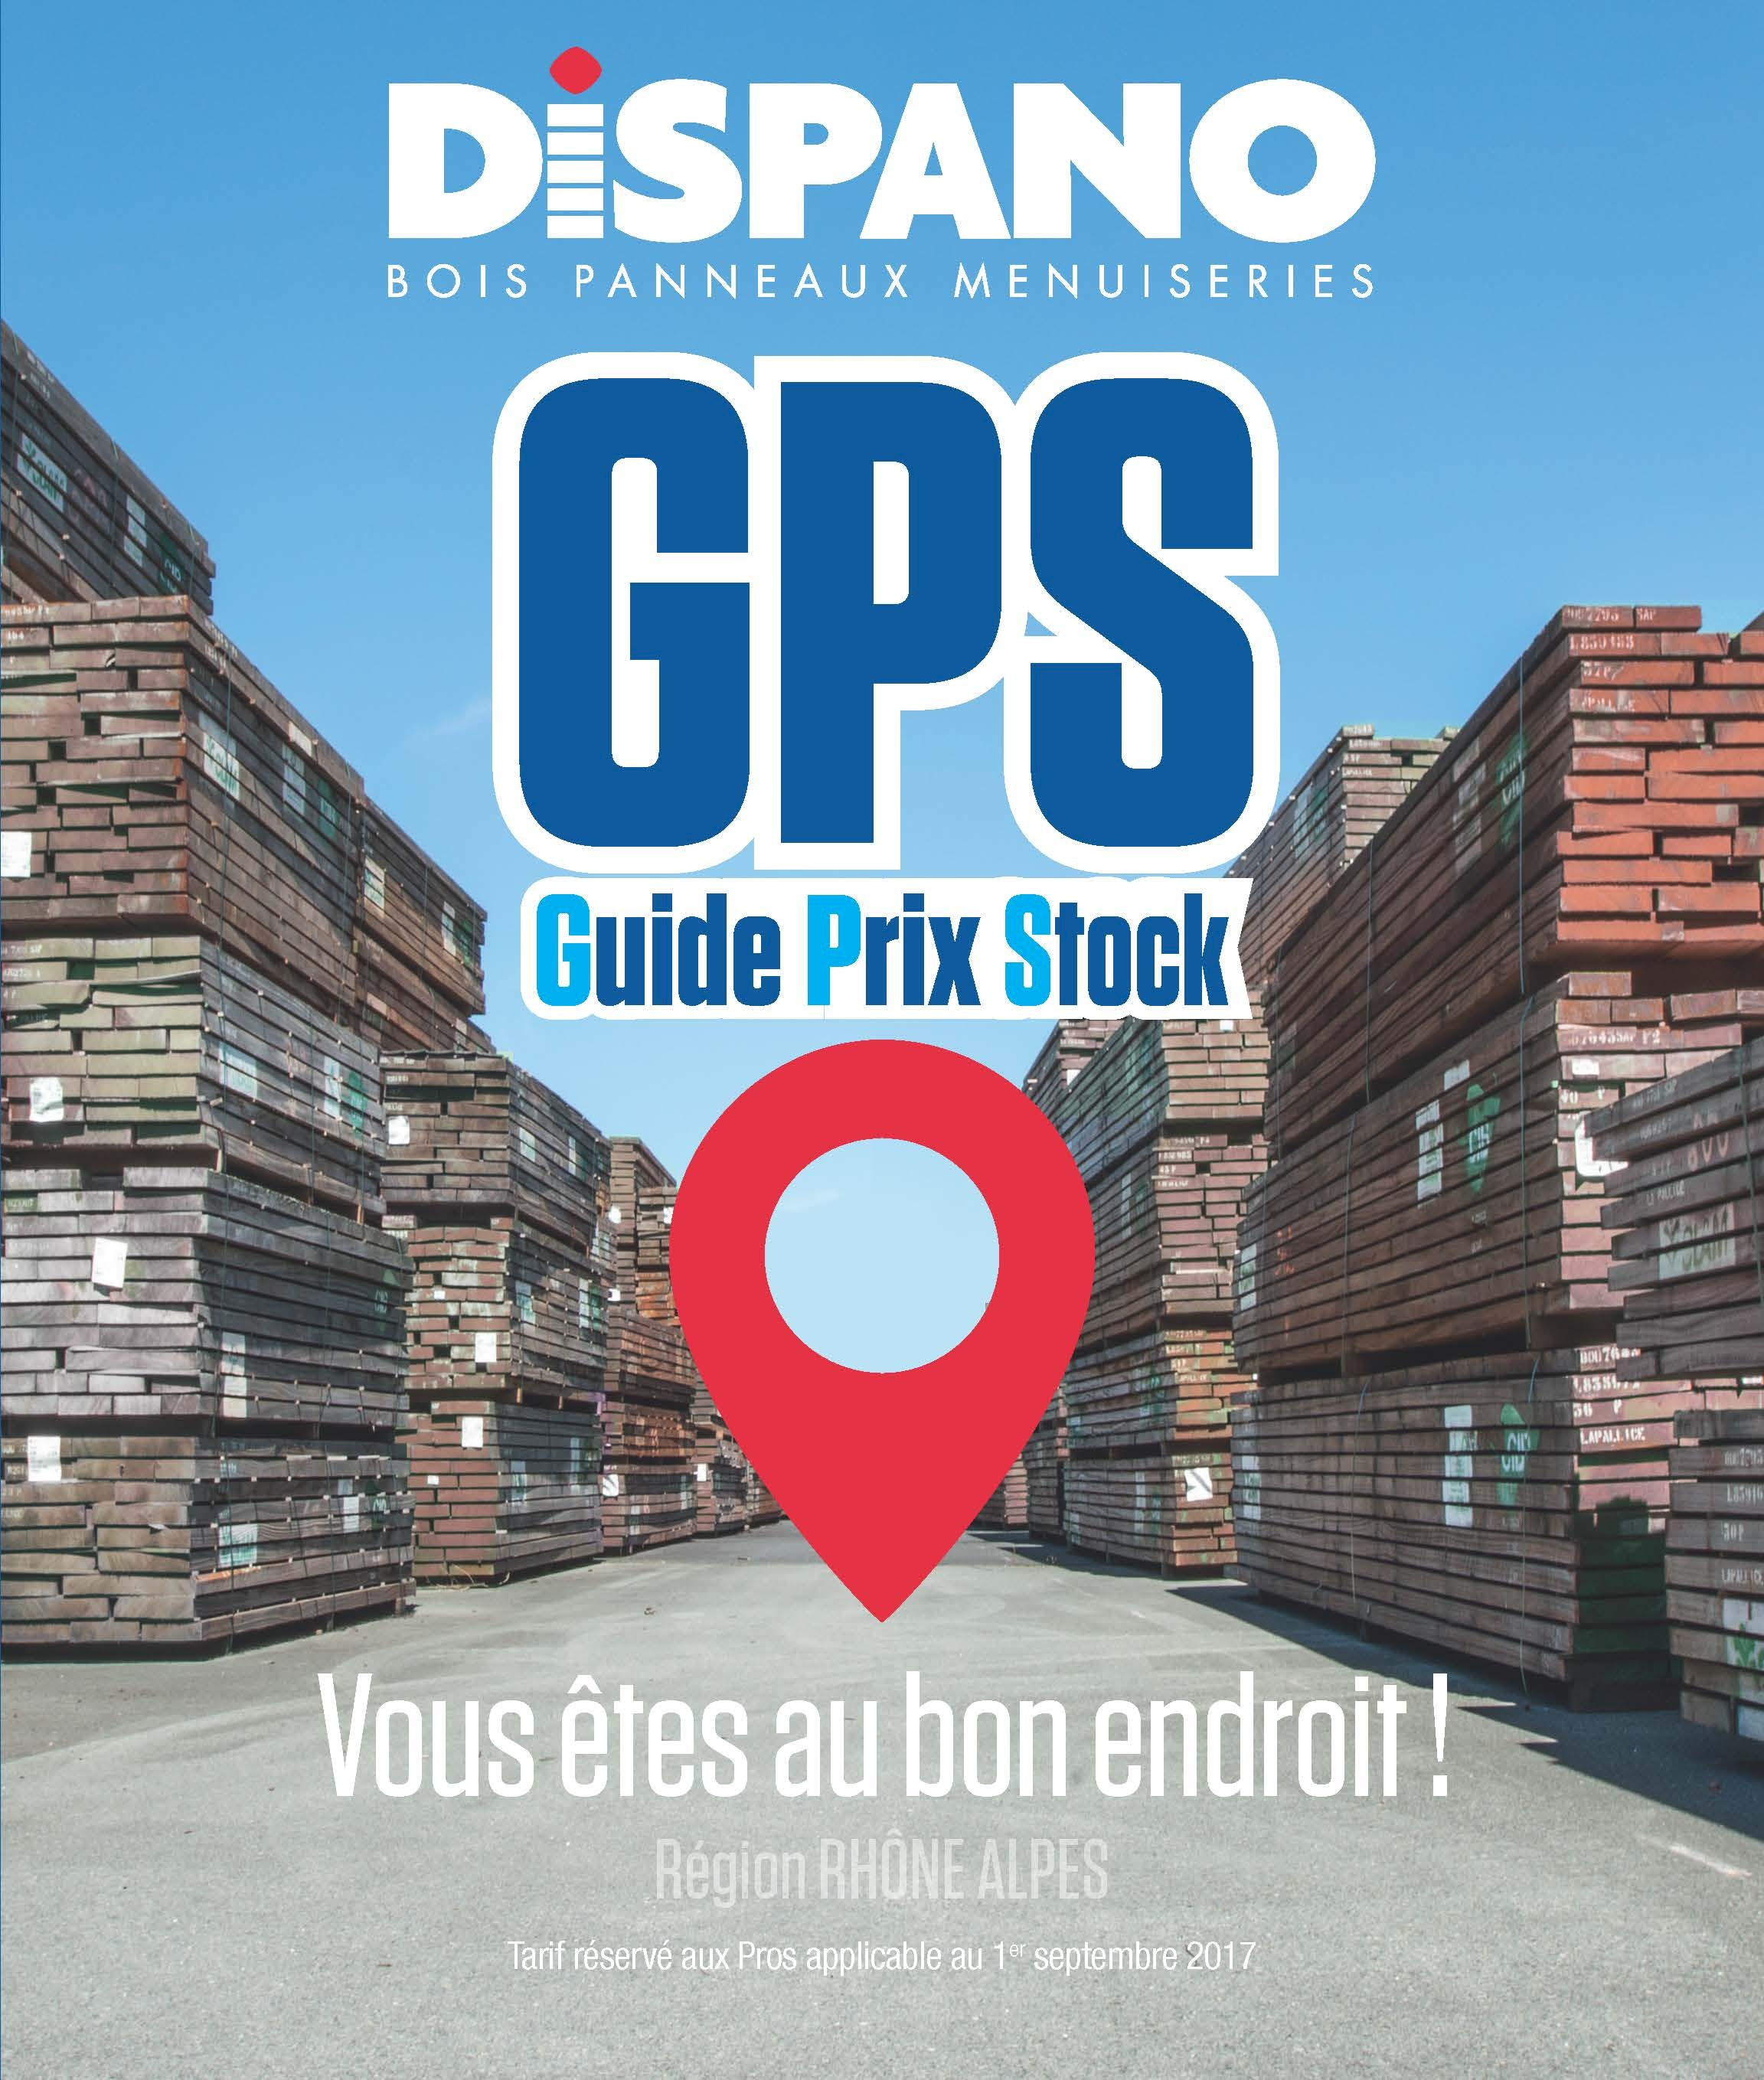 Dispano - Couverture GPS